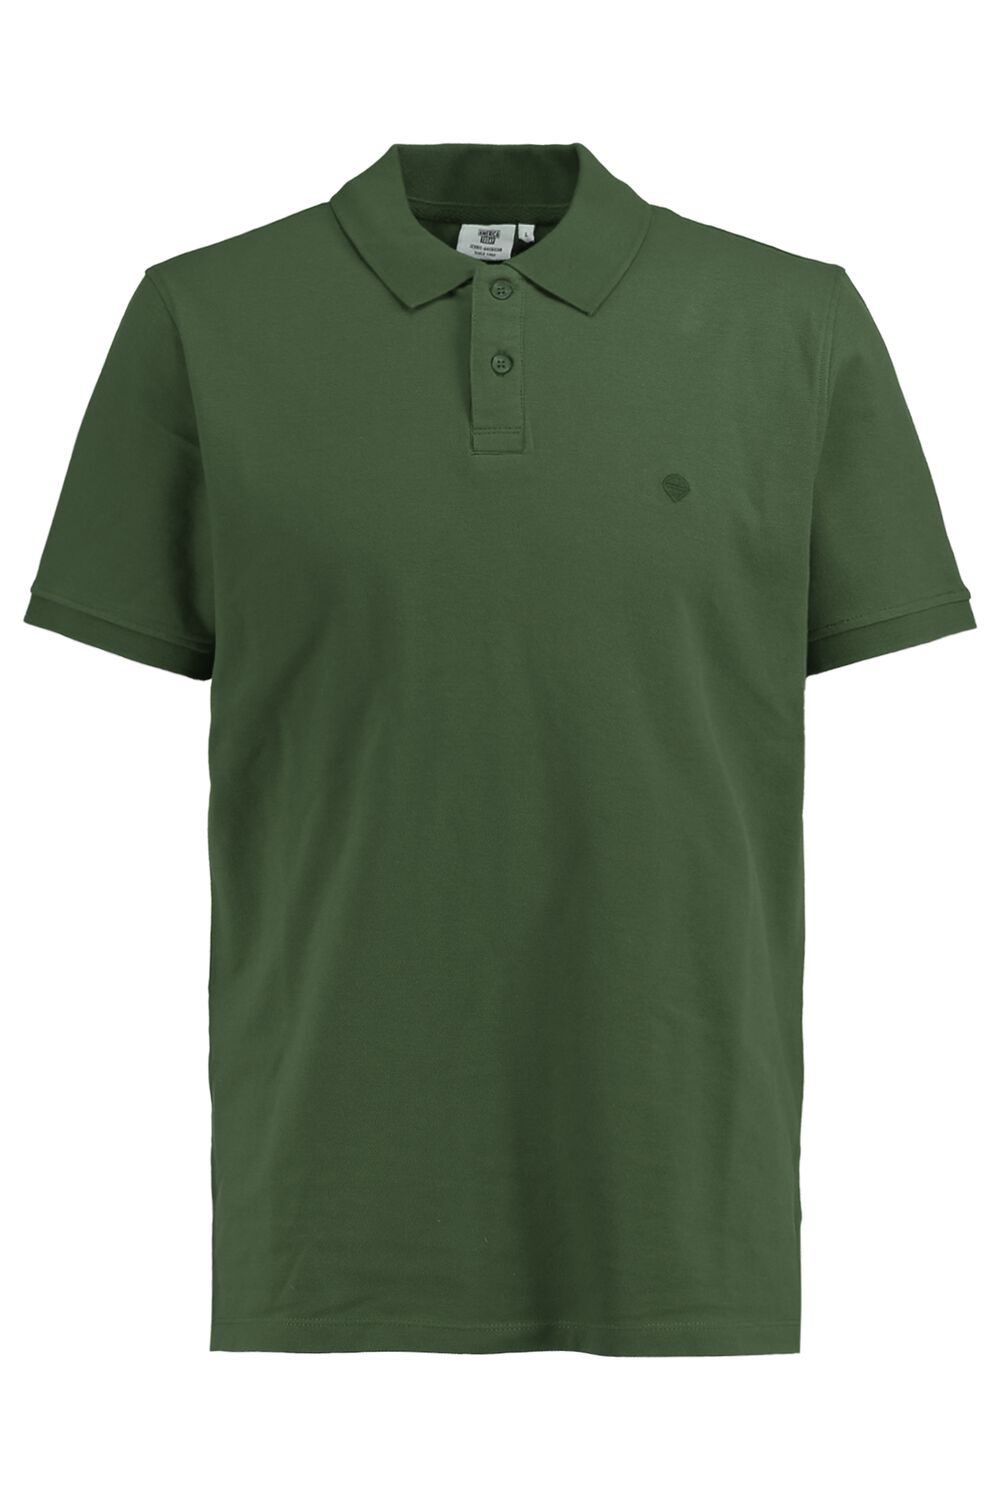 America Today Heren Polo Elton Groen